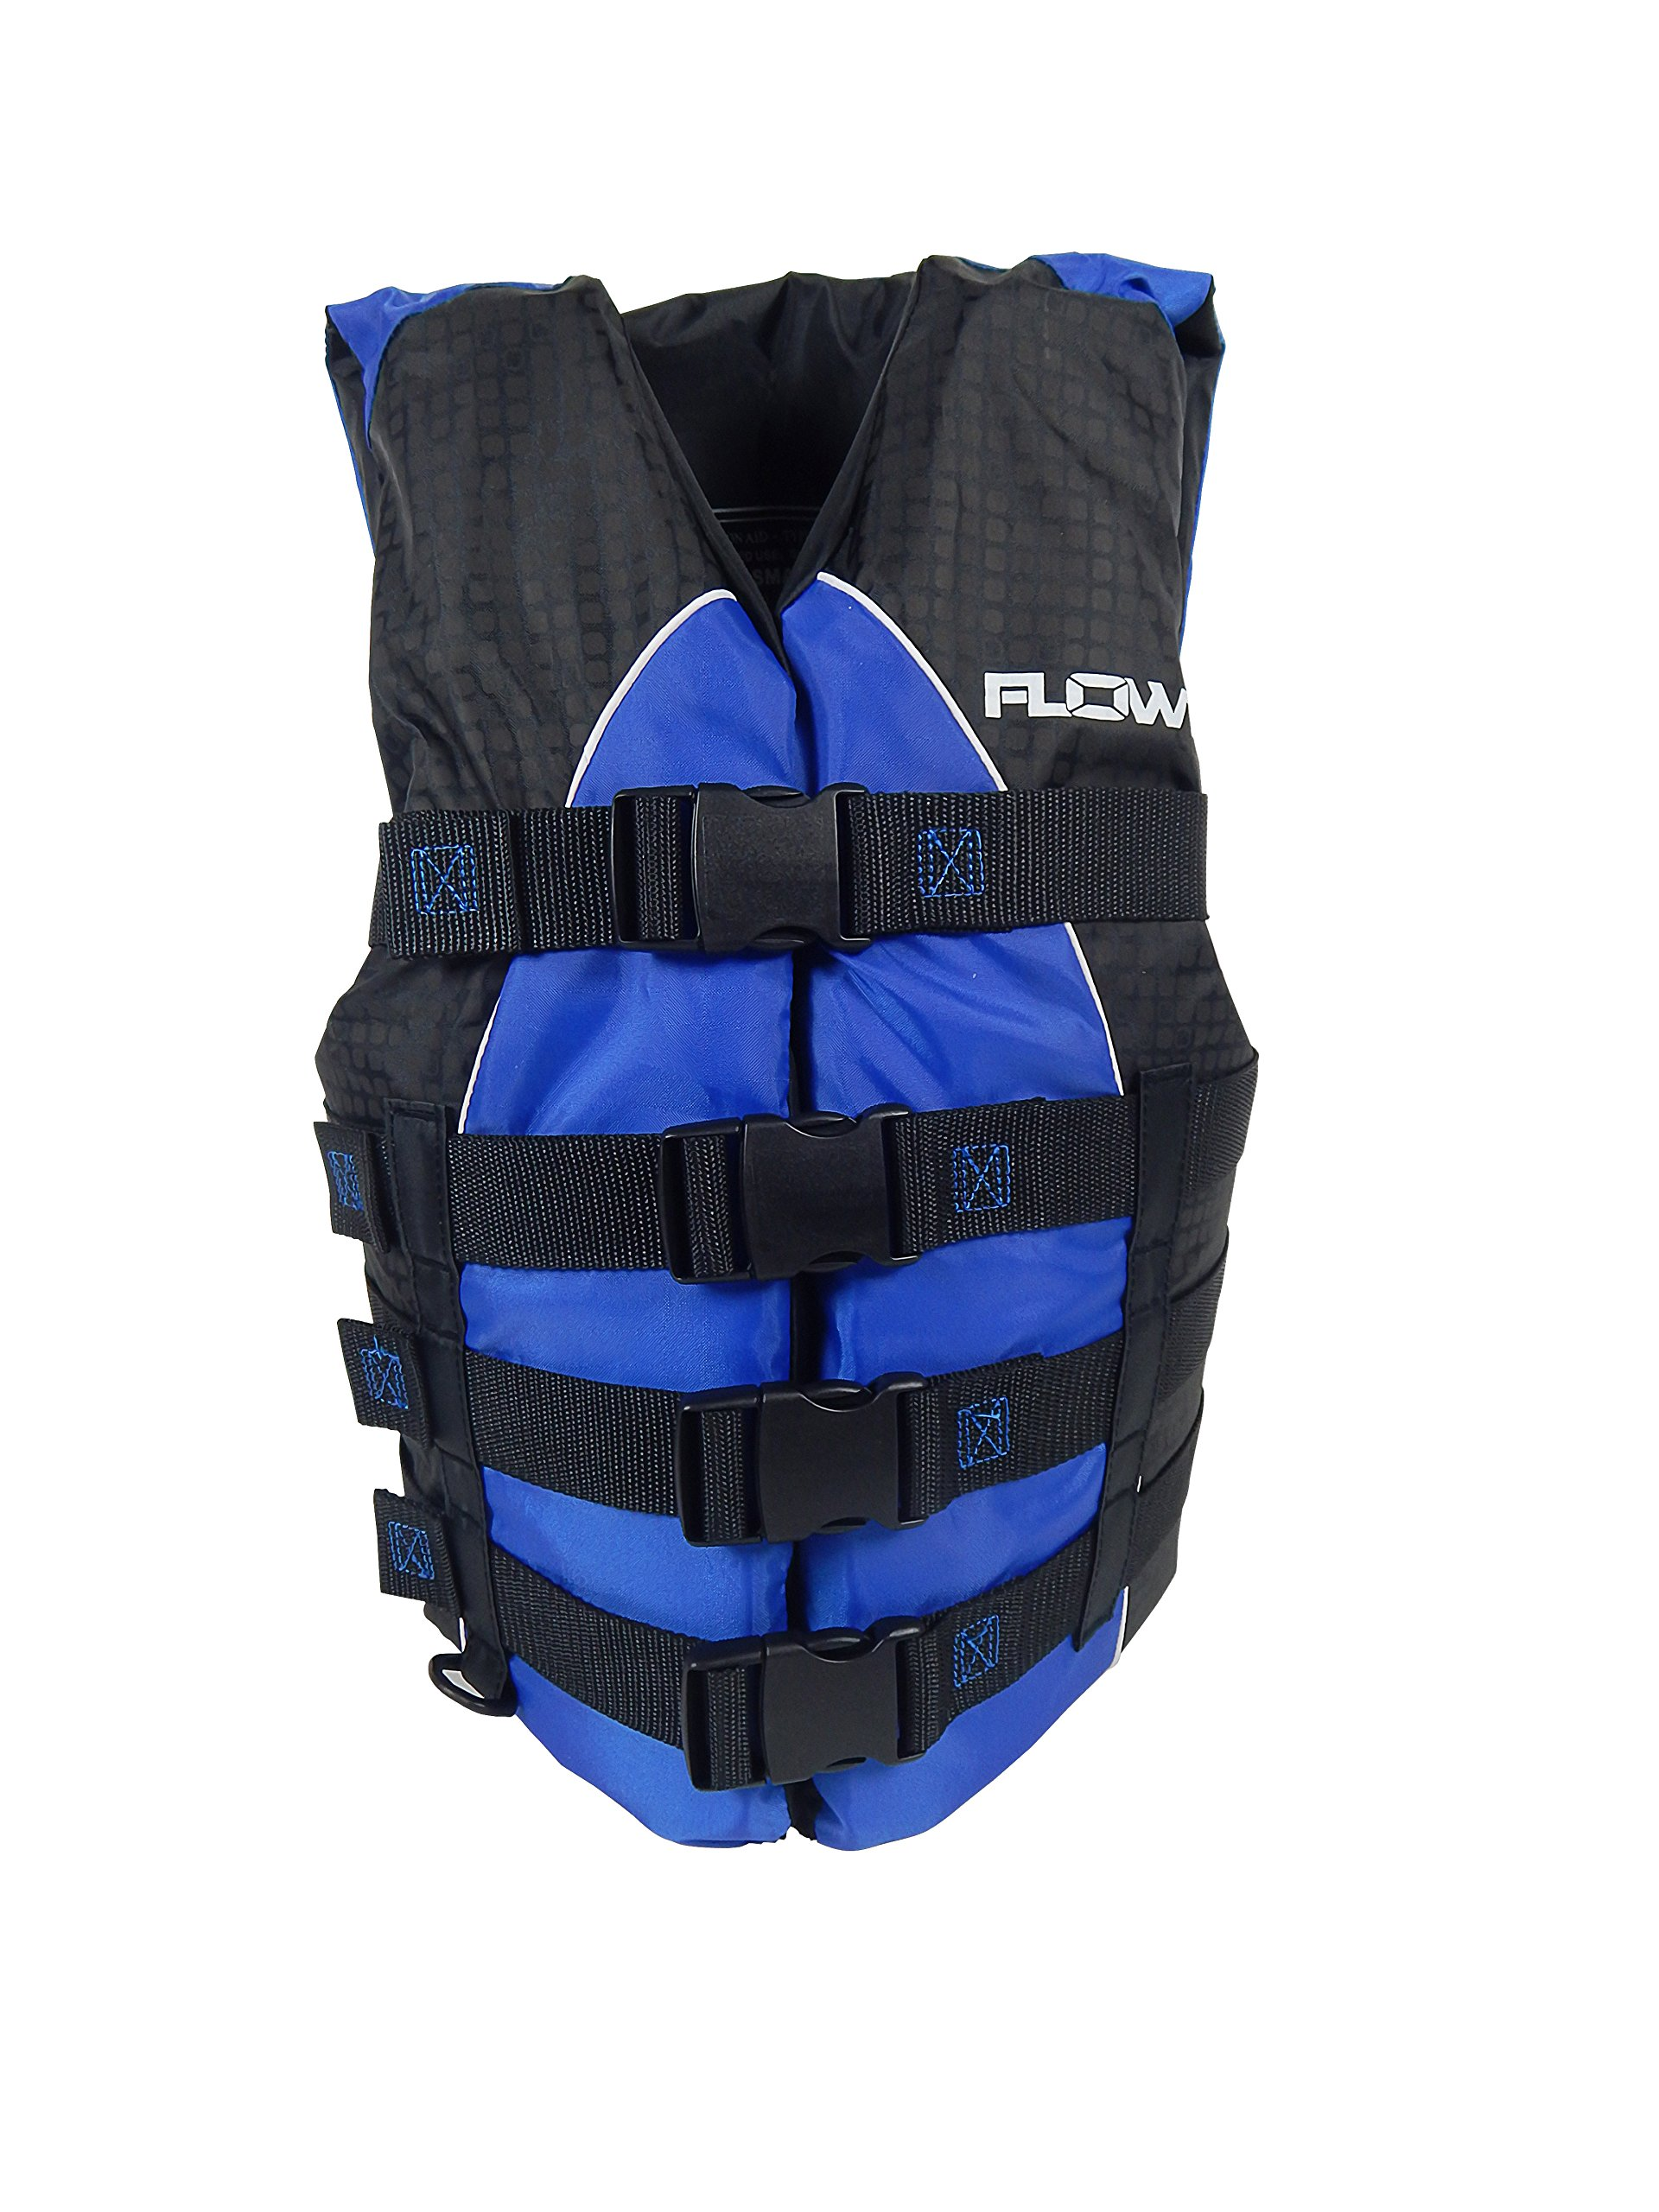 Flowt Extreme Sport 40401-2-XS Extreme Sport Life Vest, Type III PFD, Closed Sides, Blue, Extra Small, by Flowt